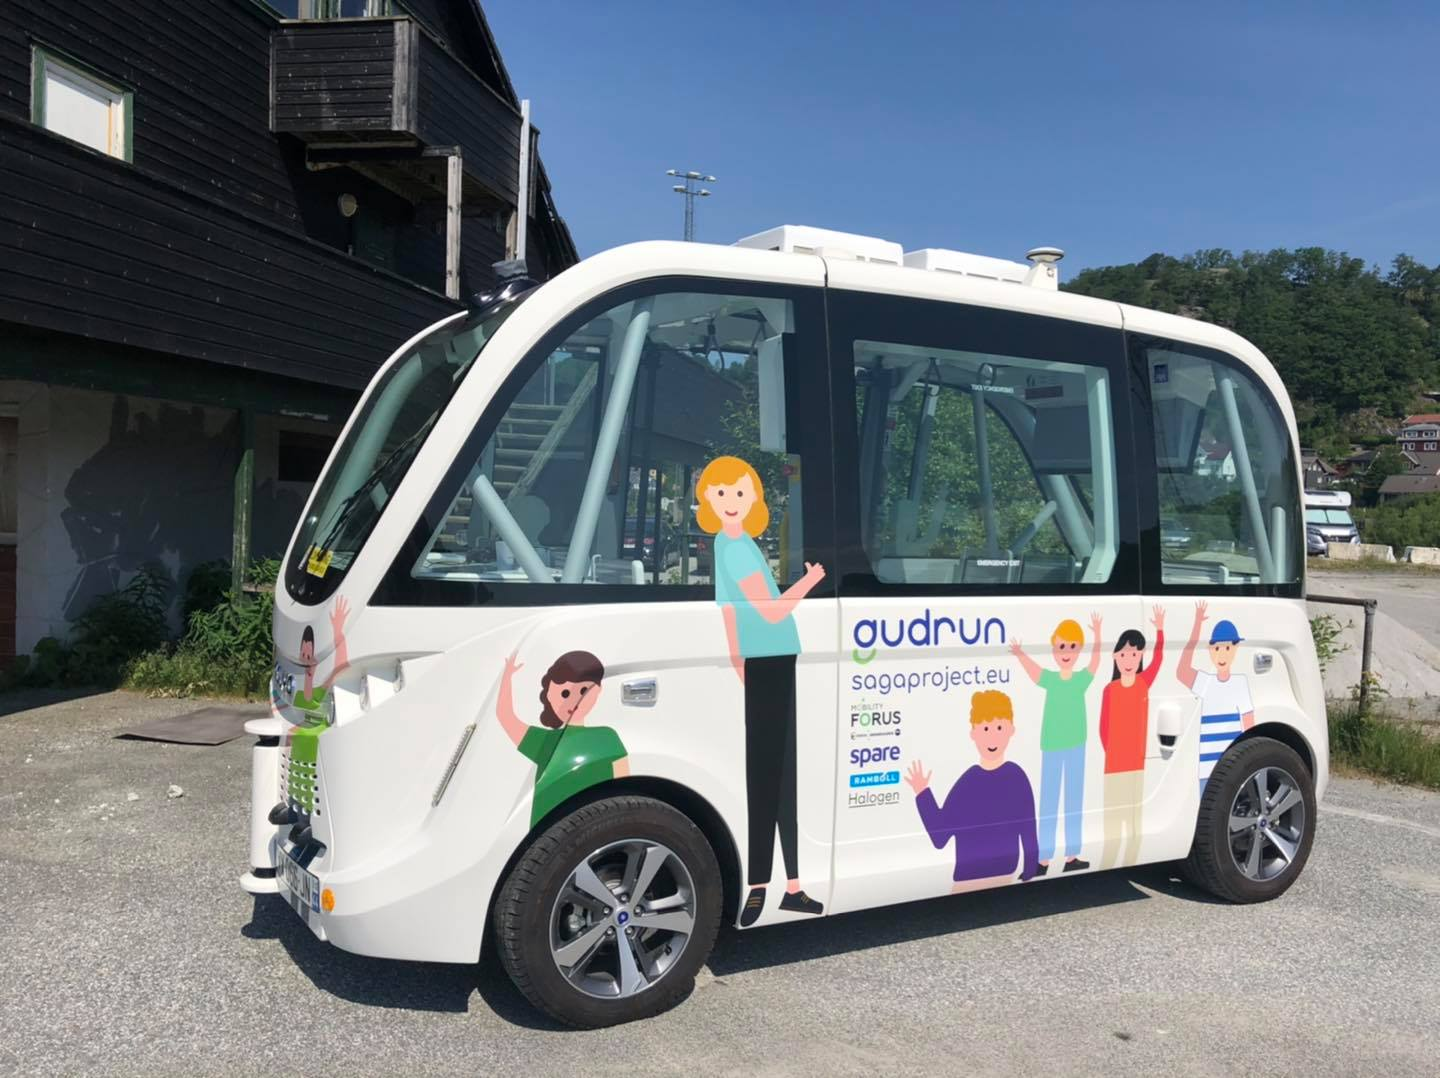 FABULOS puts self-driving busses on the streets